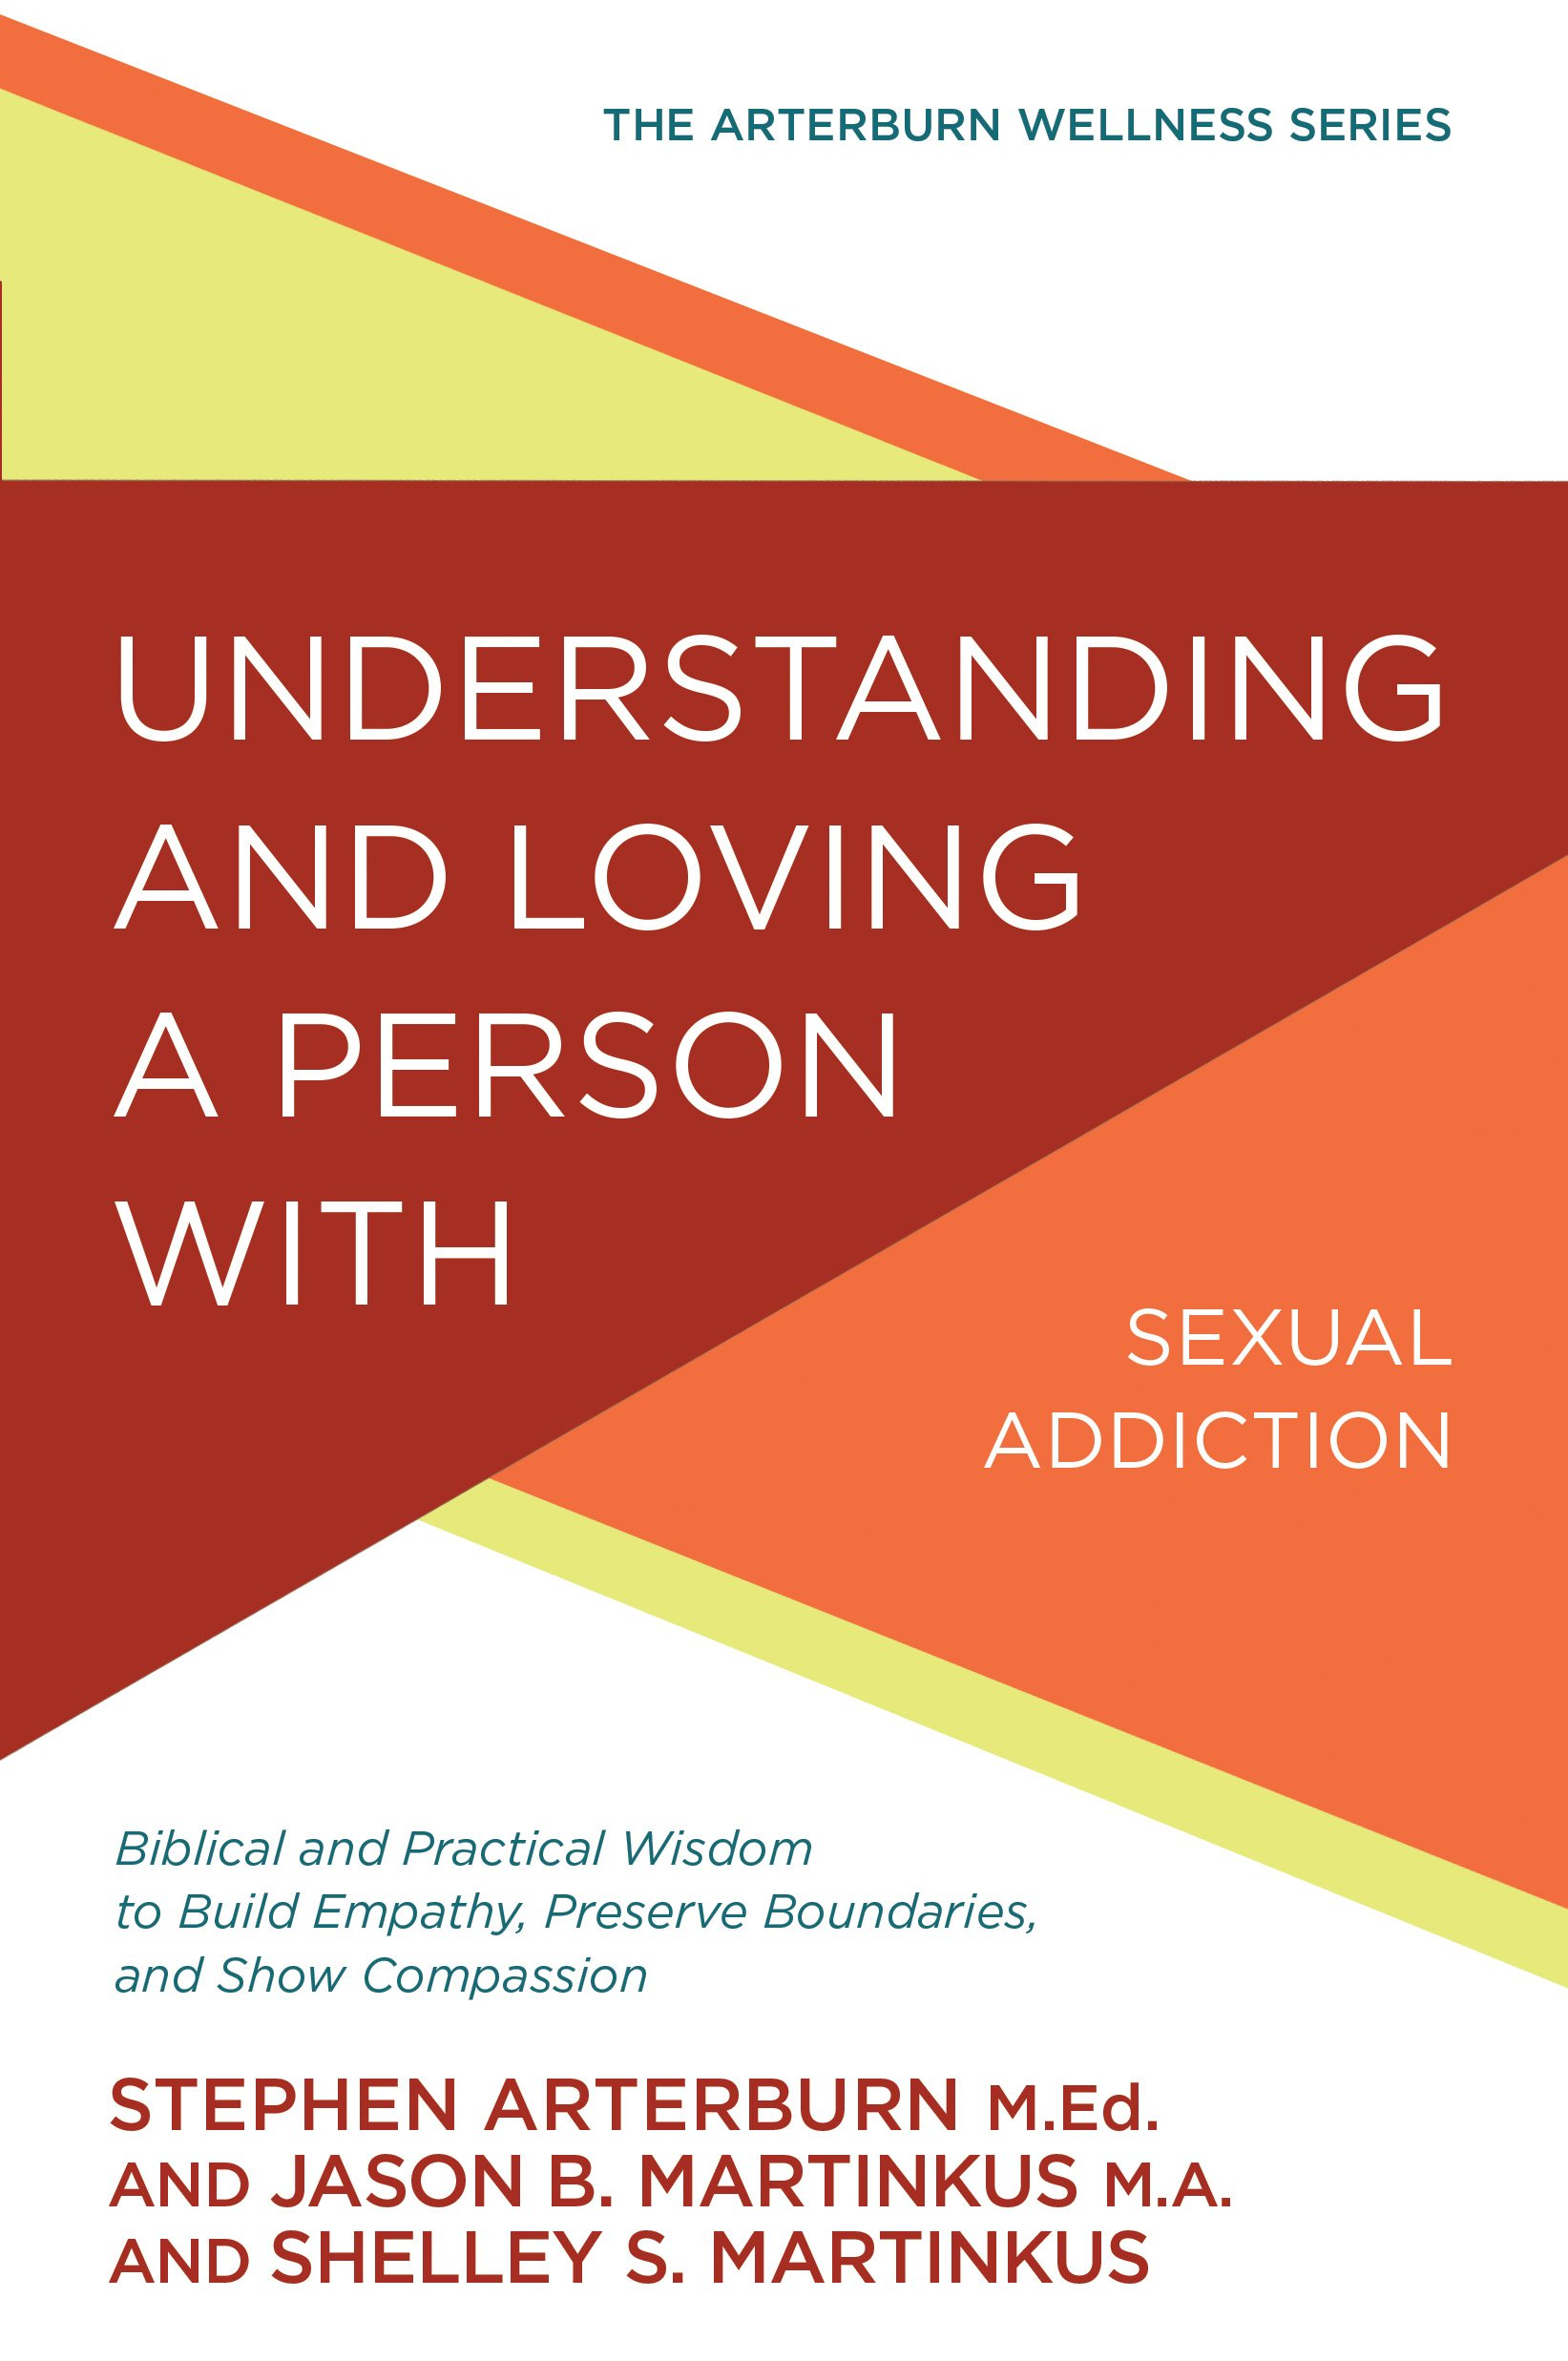 Understanding and Loving a Person with Sexual Addiction: Biblical and Practical Wisdom to Build Empathy, Preserve Boundaries, and Show Compassion (The Arterburn Wellness Series)